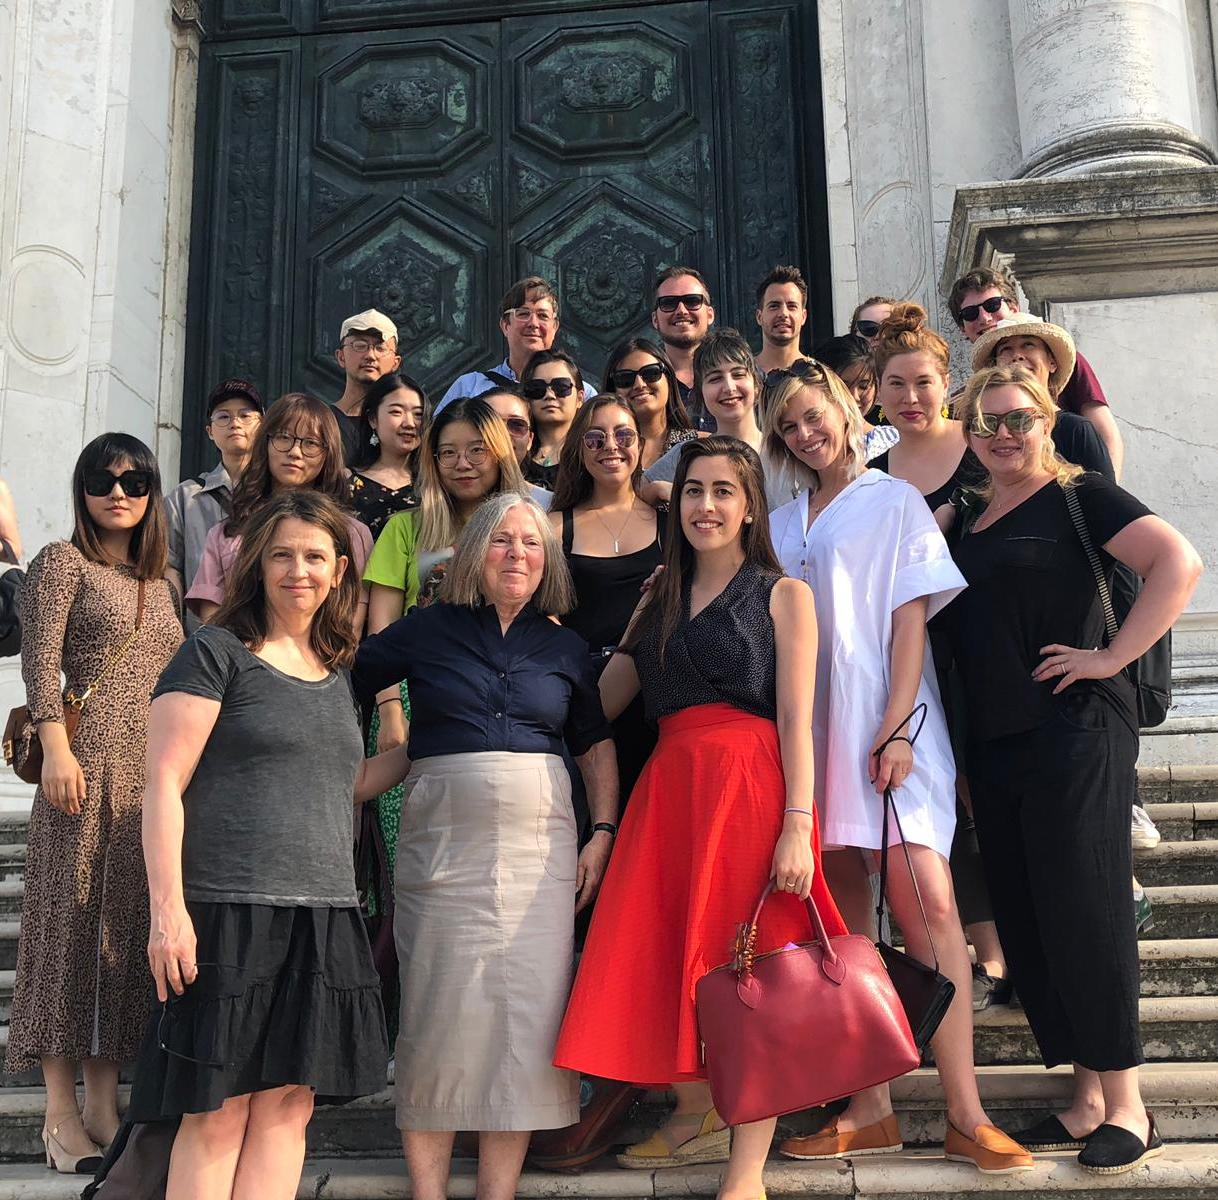 Alumna June Allen ('84) (front row, left), a student in the first year of the program, with students and faculty of the 2019 class at Santa Maria della Salute.